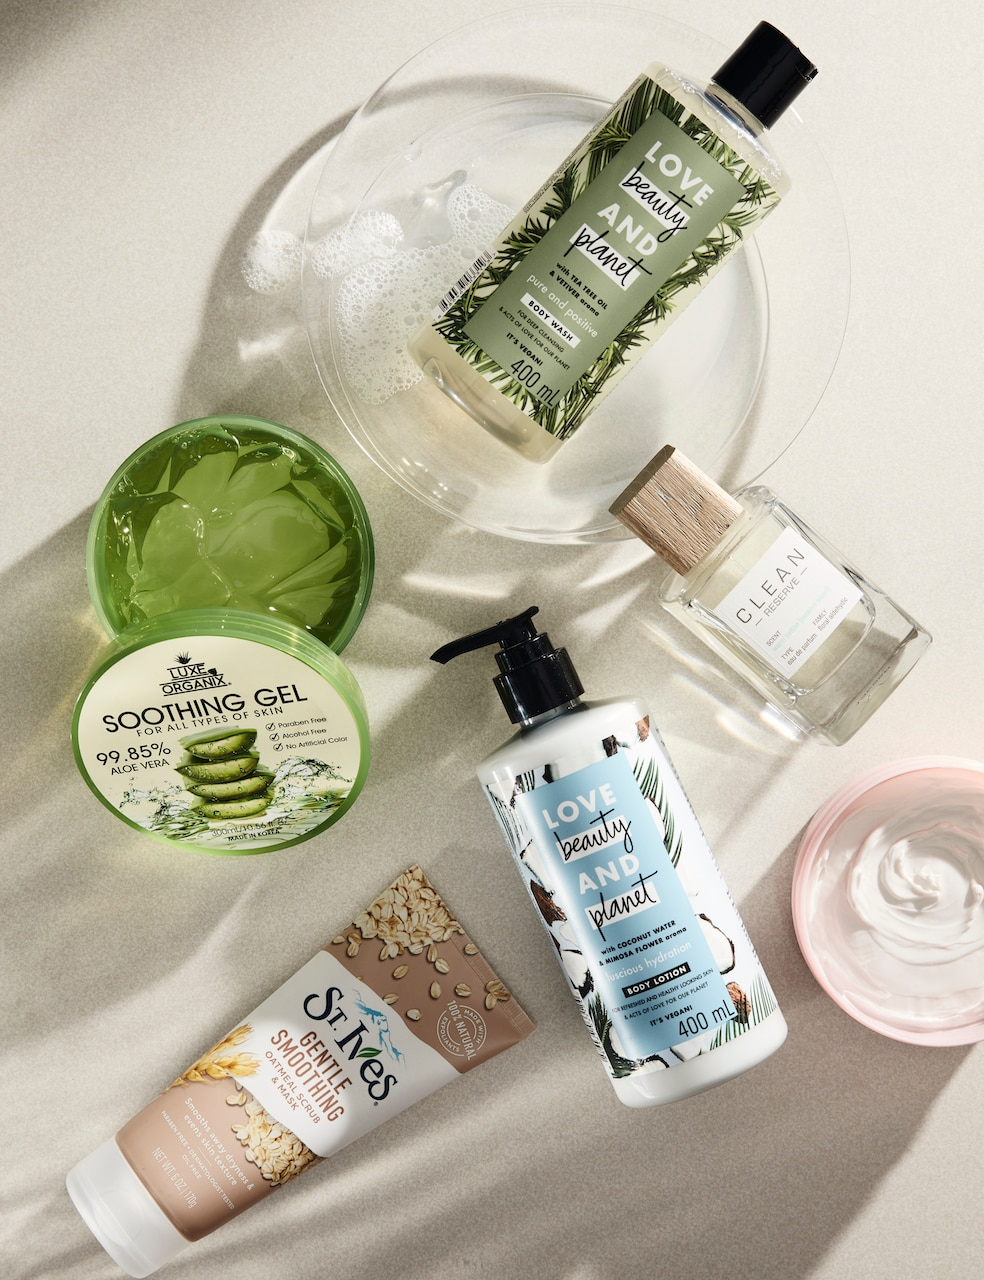 Get your natural beauty fix at SM Beauty